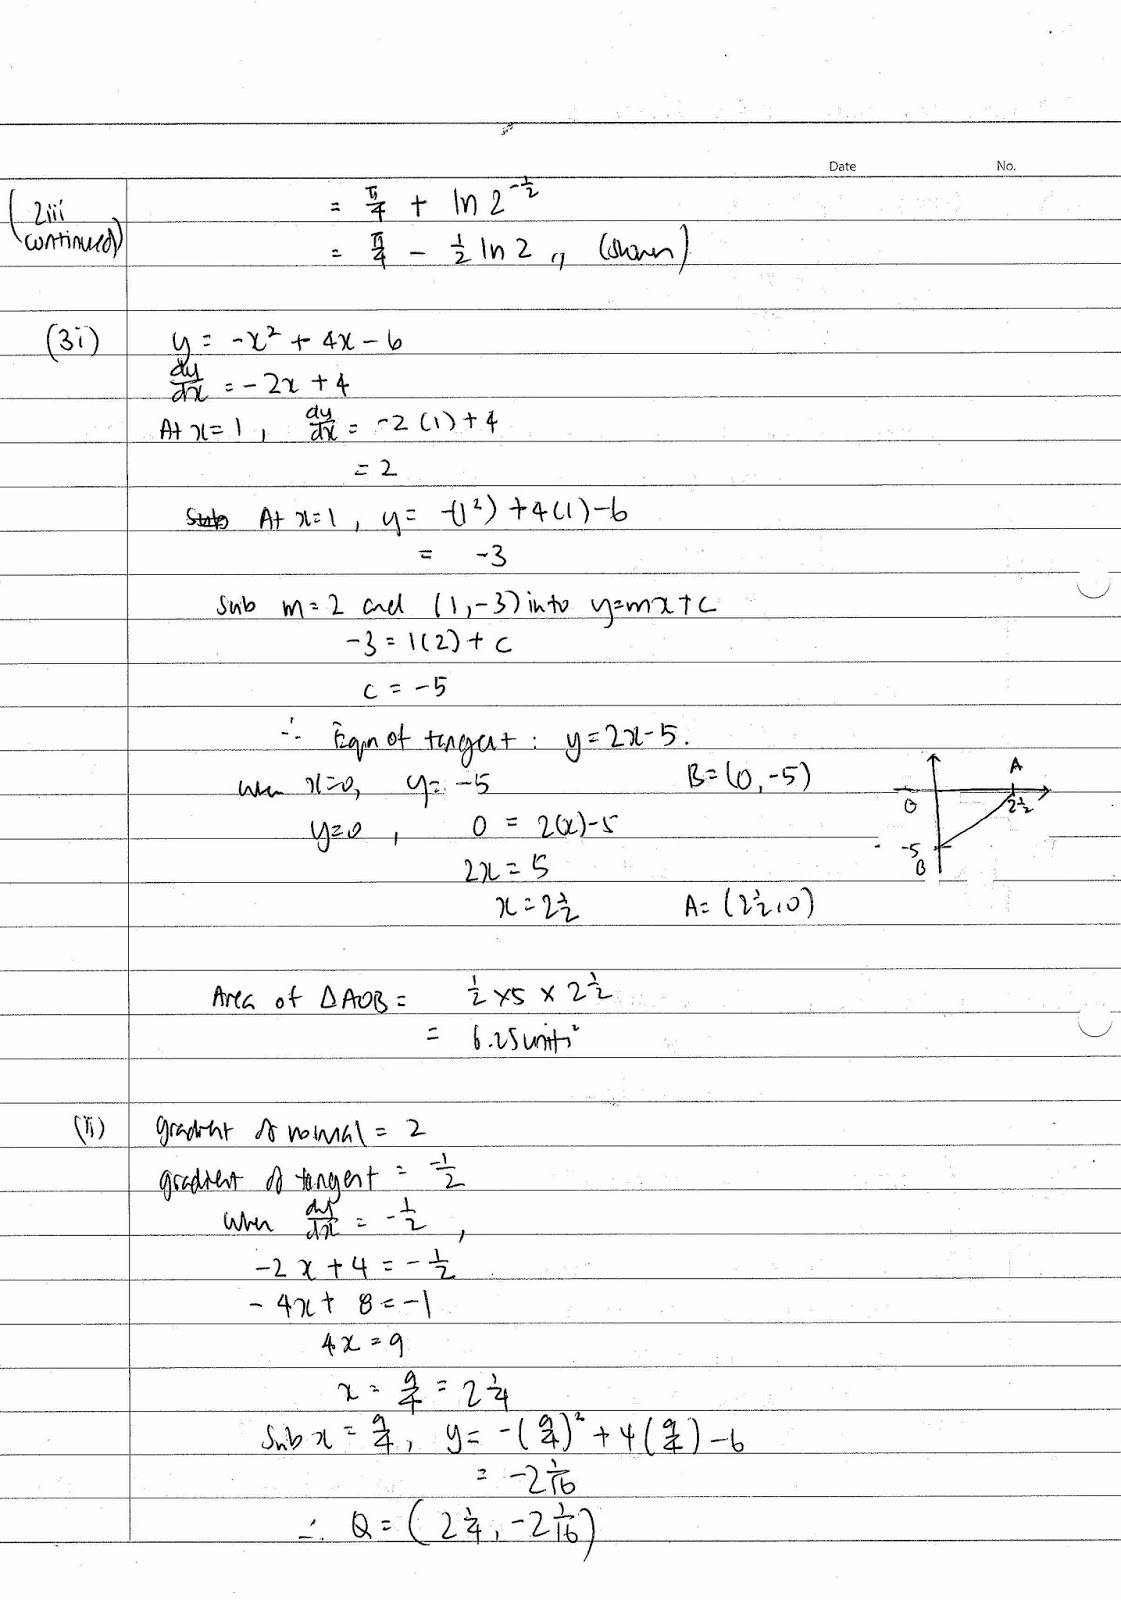 ocr mathematics c terminal paper 2009 Edexcel as maths past papers f214 past papers 2009-2015 ocr as chem 2015 paper 02 past papers paper 01 past papers ocr as chem 2008 f321 past papers 2008-2015.